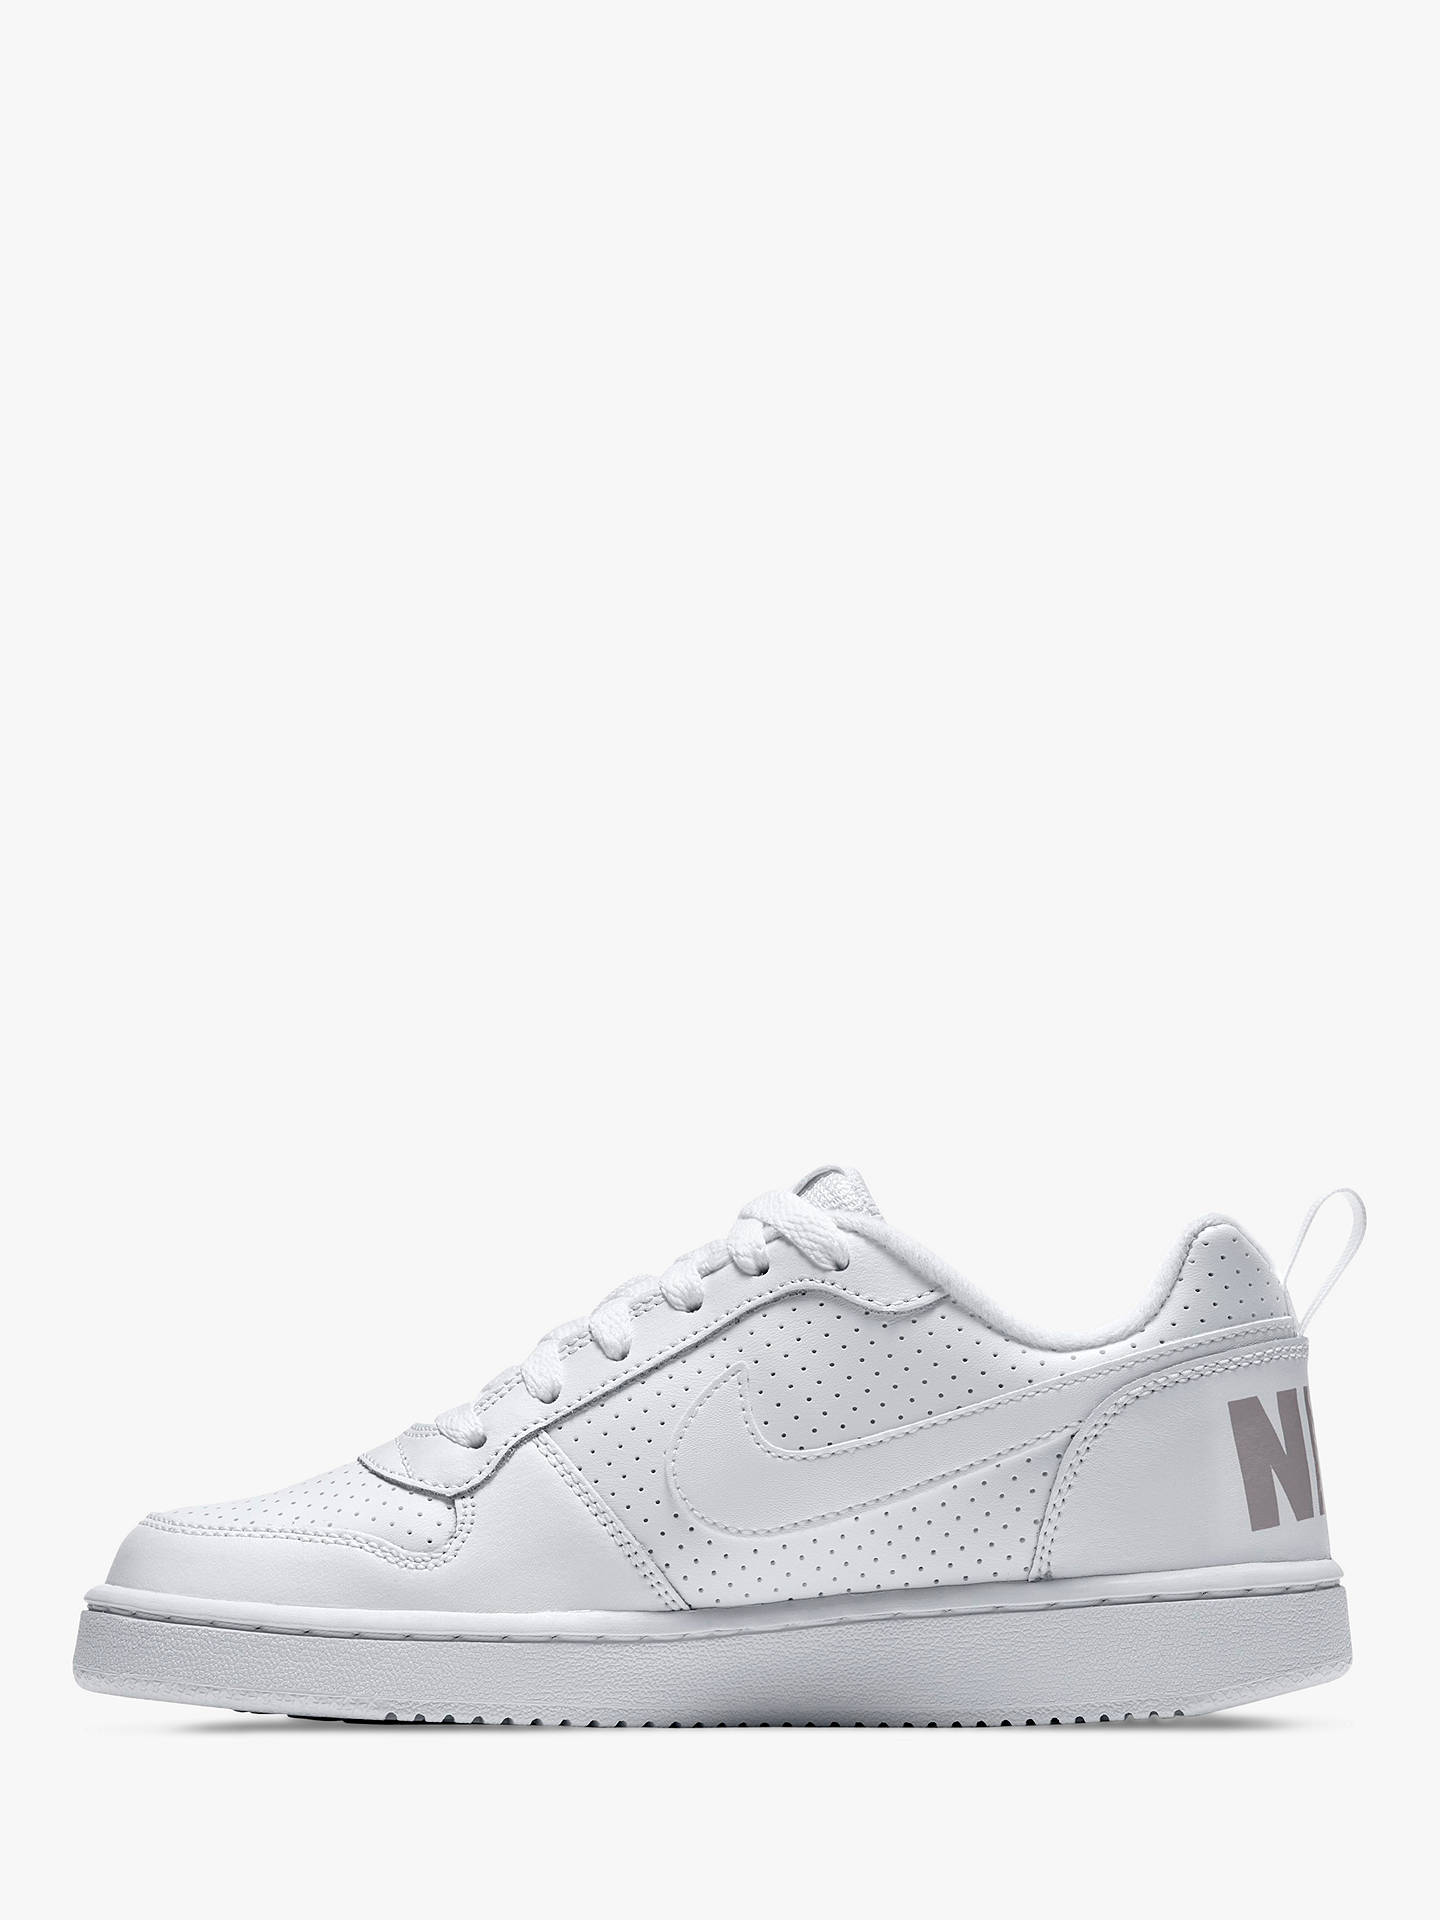 7a08106e0d ... Buy Nike Children's Court Borough Low Trainers, White, 4 Online at  johnlewis. ...